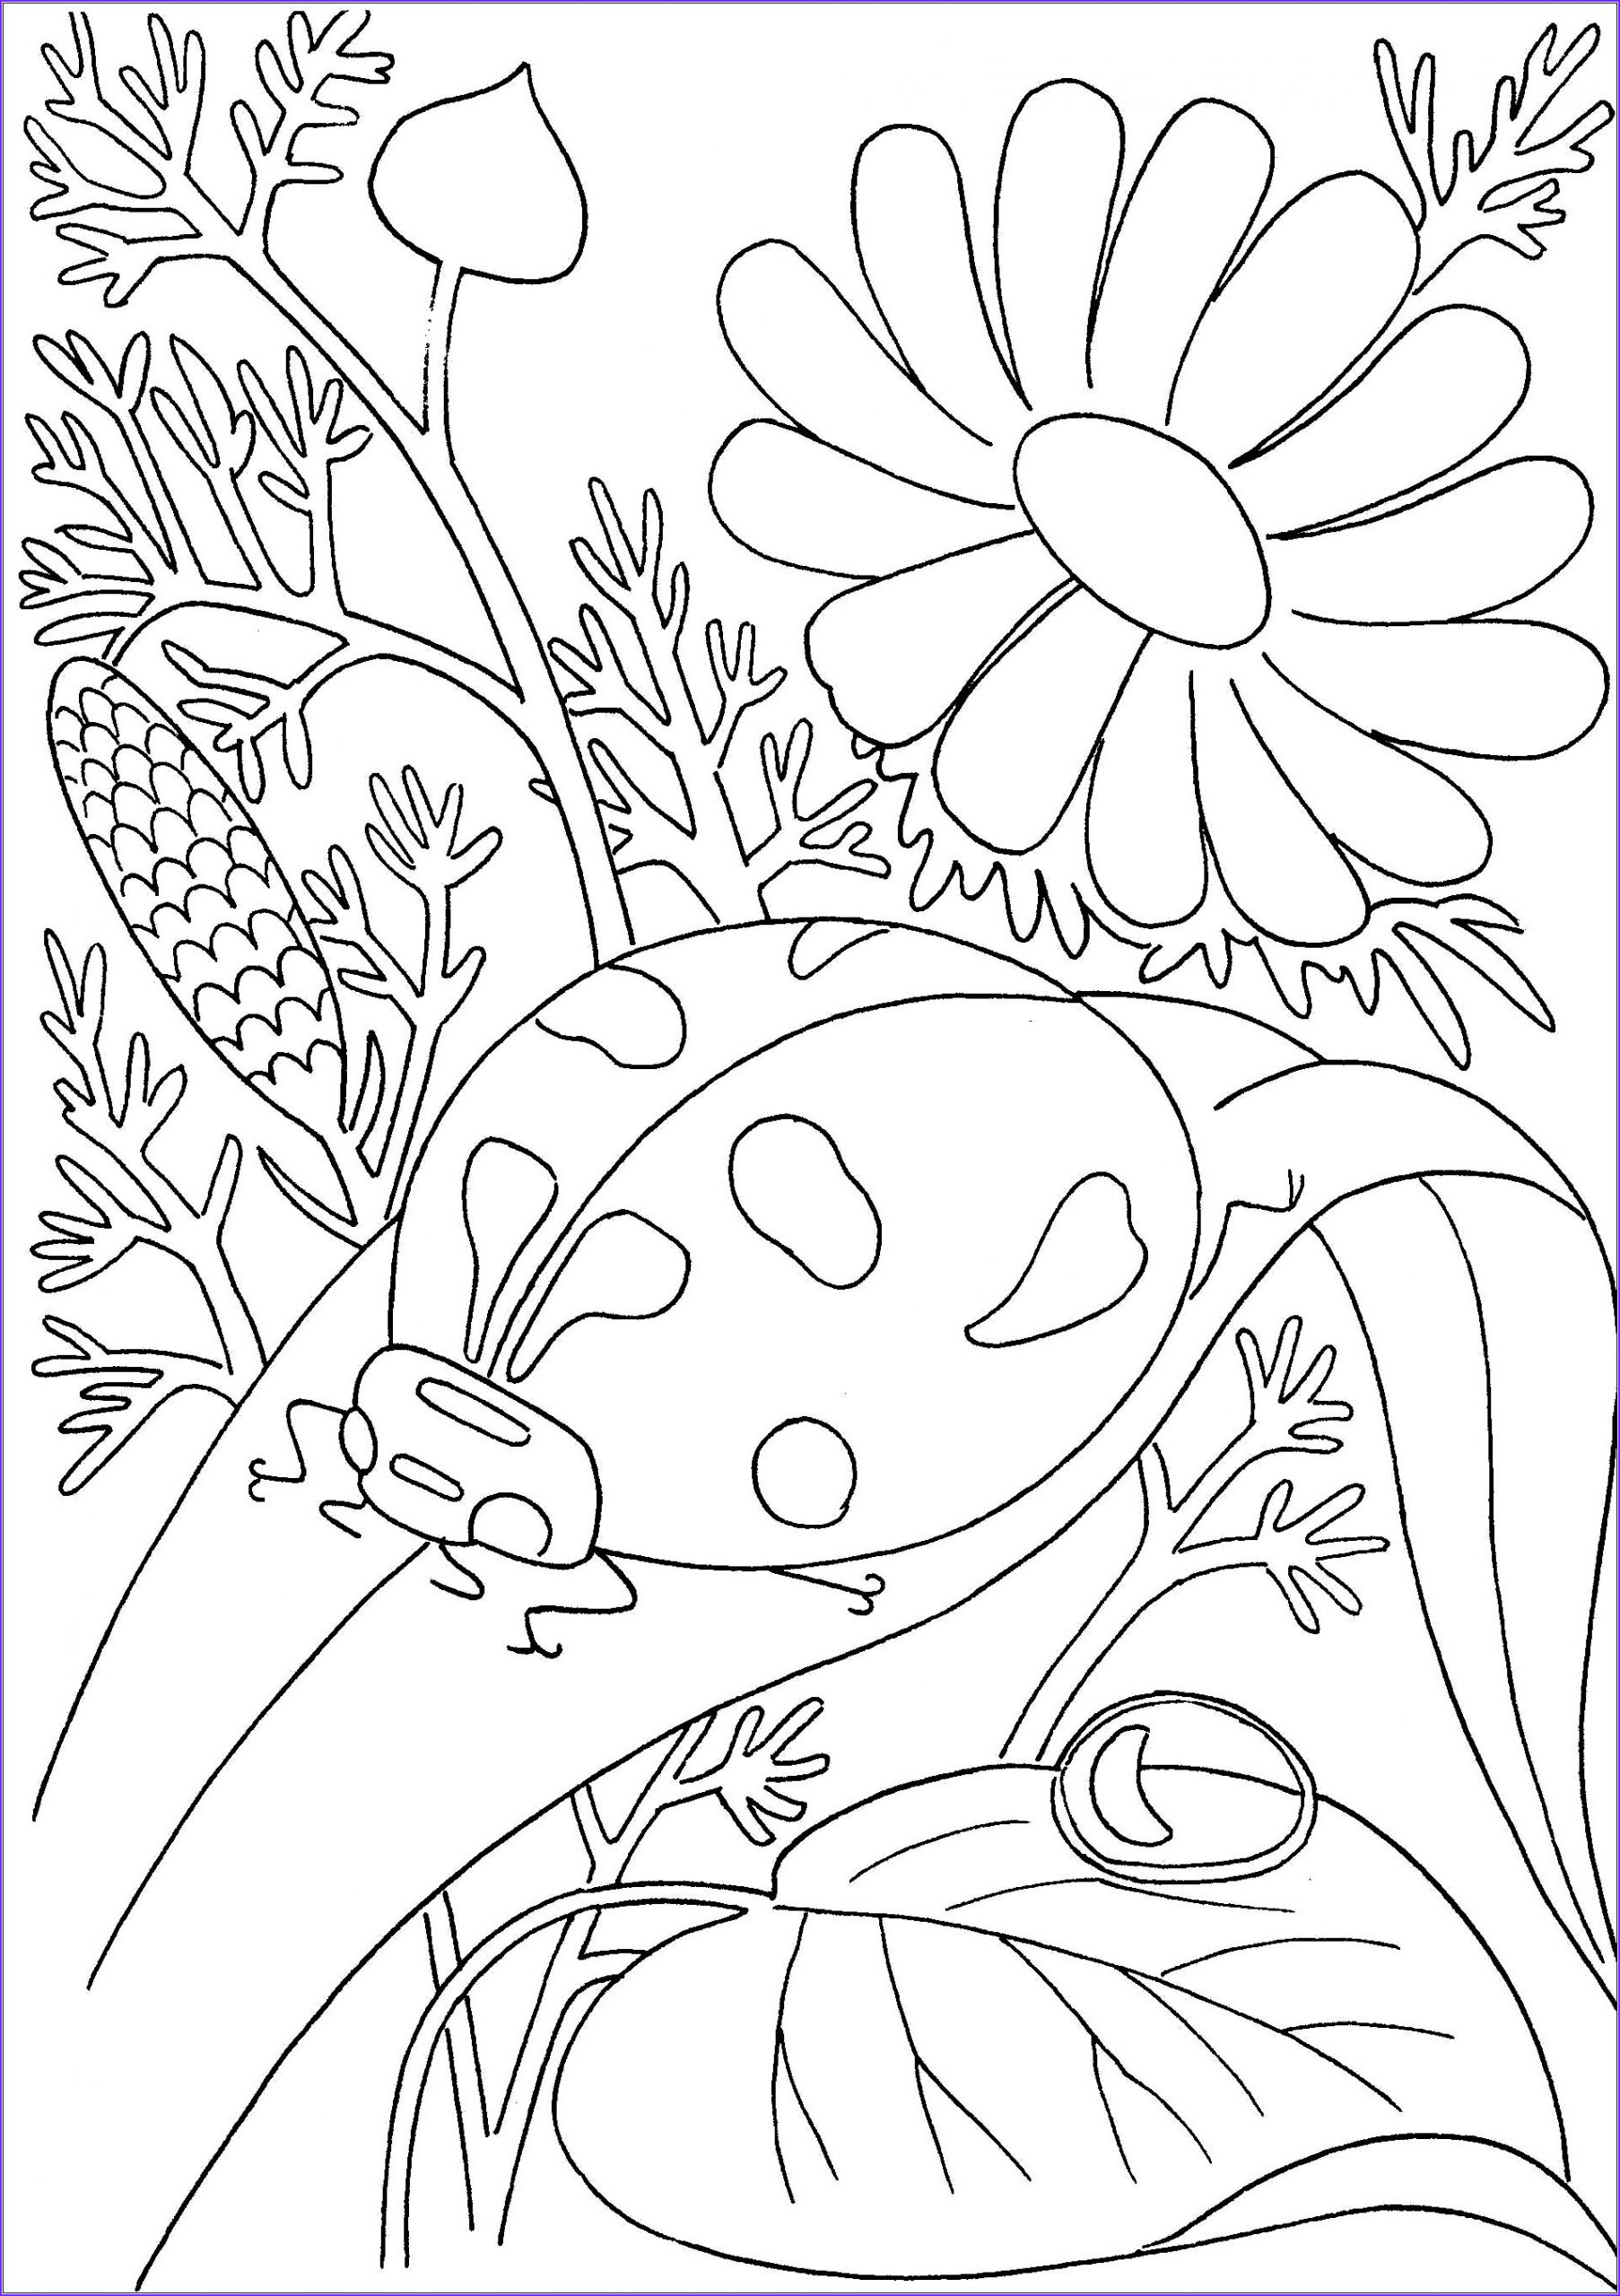 Insects Coloring Book Inspirational Photos Insects to Color for Kids Insects Kids Coloring Pages